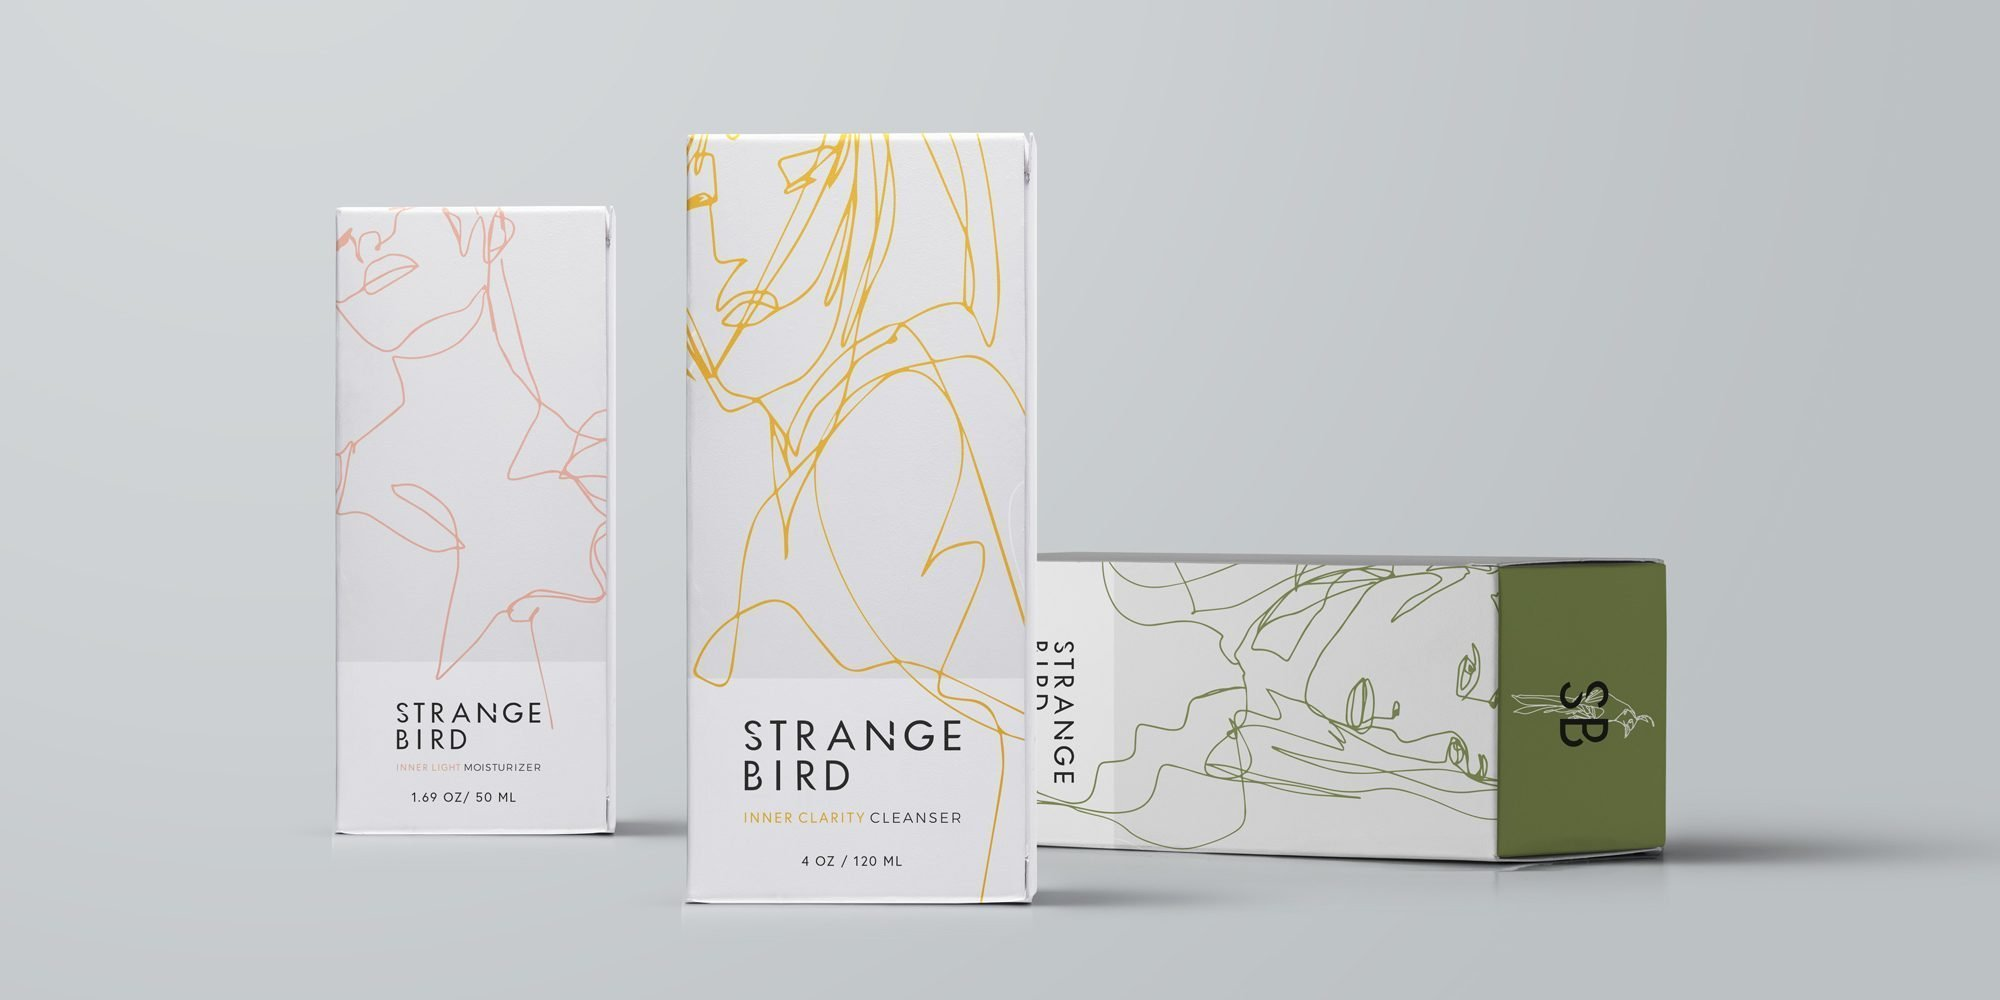 Design Redux: Indie Beauty Brand Founders Discuss Packaging Changes